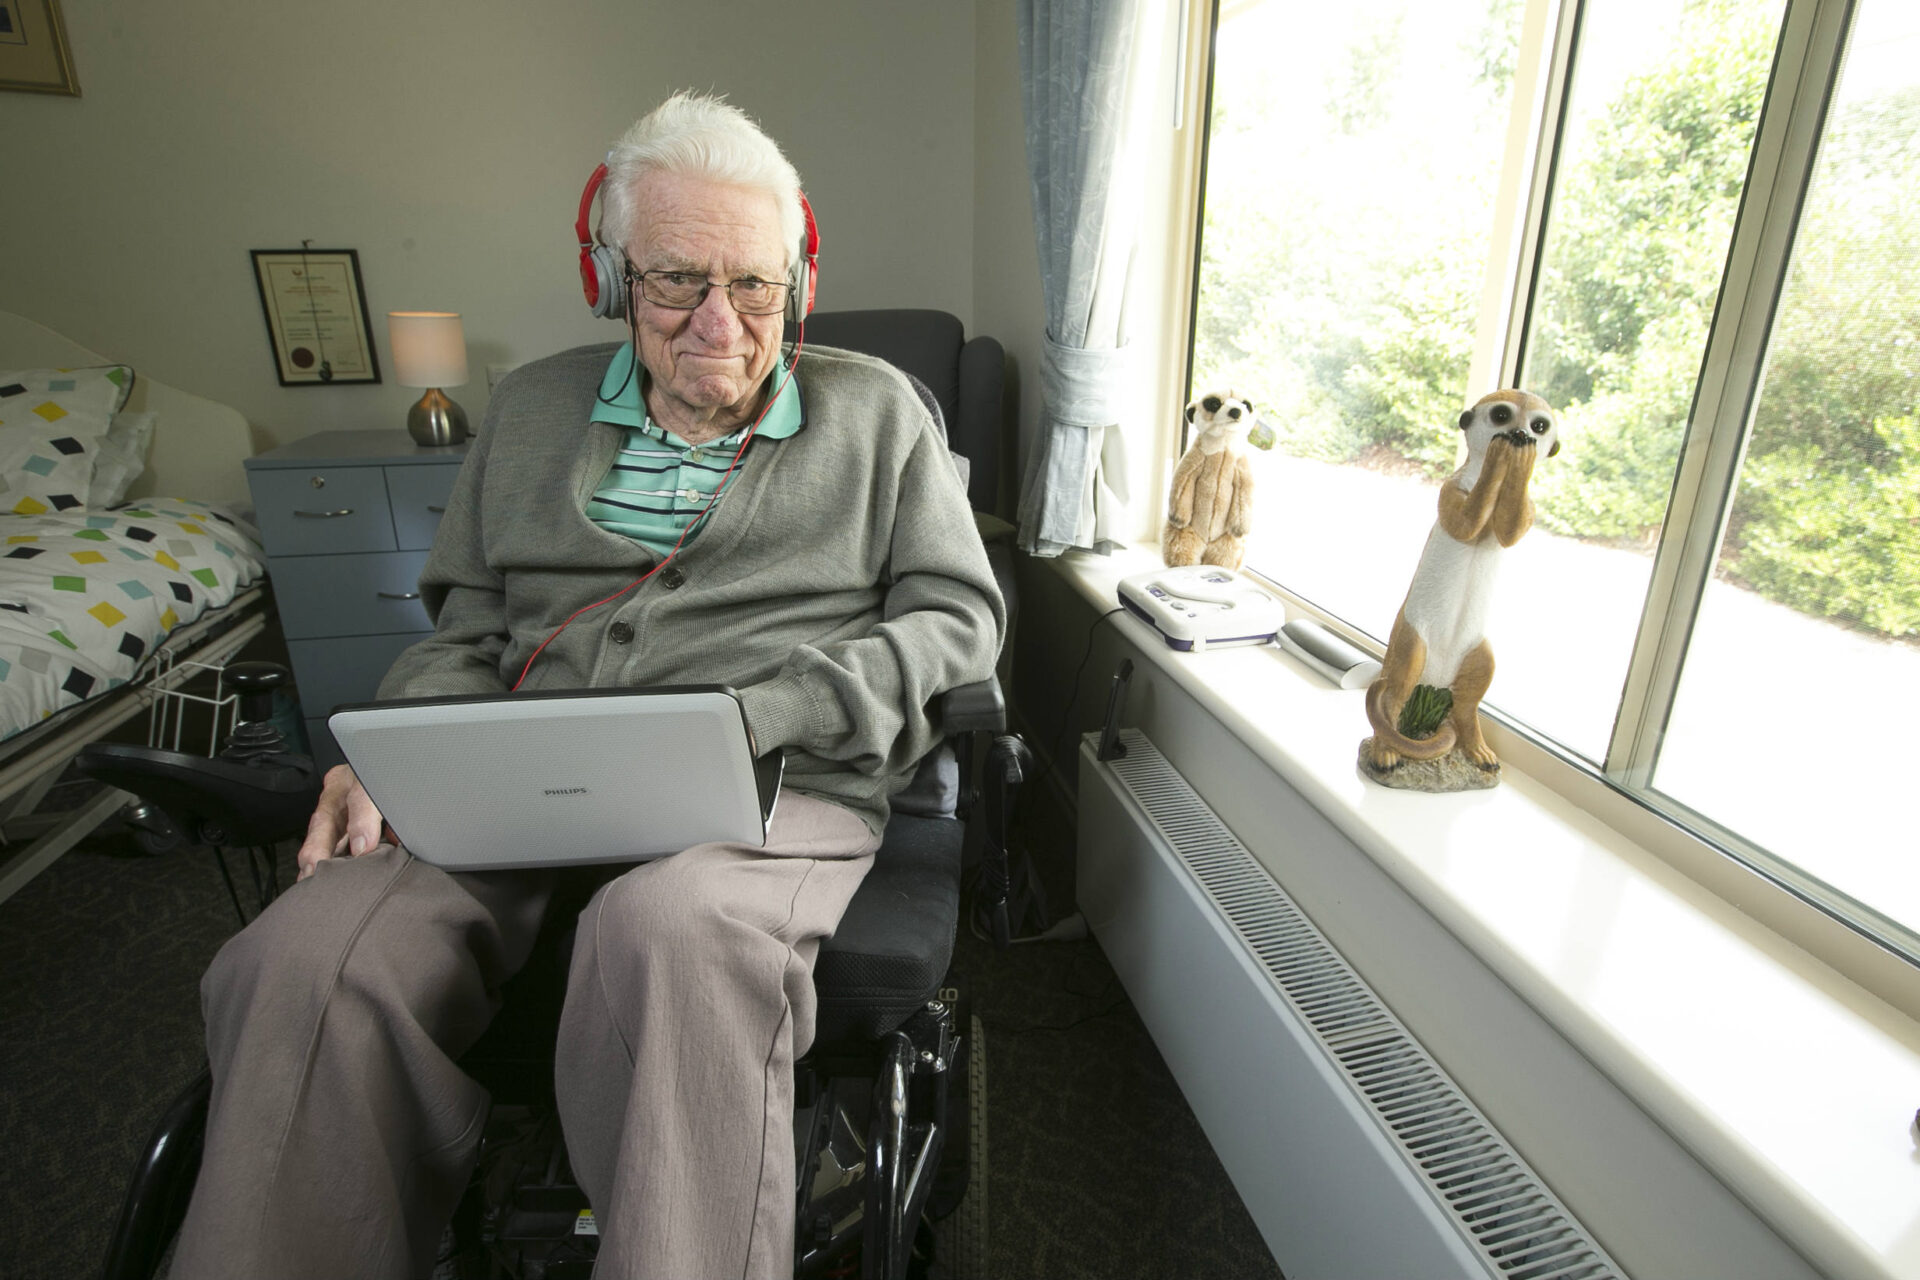 This is a photo of Gordon, in his room, sitting in a wheelchair next to his bed and beside a window. Gordon is wearing headphones and has a laptop on his lap. He looks into the camera with a wry smile. On the window sill are one stuffed toy meercat and one statue of a meercat.